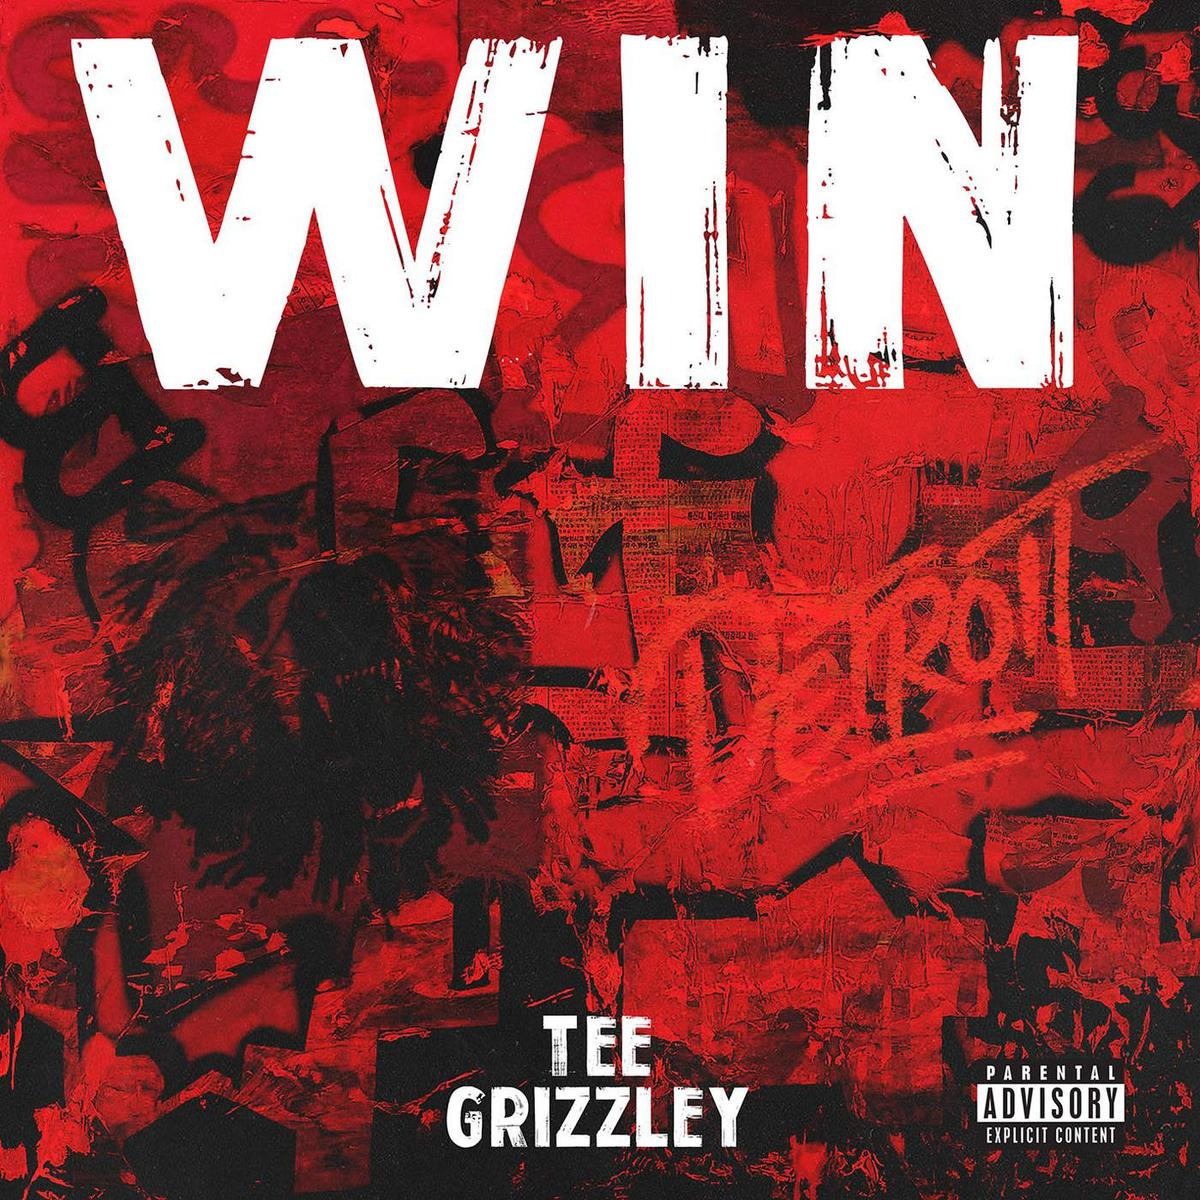 tee grizzley - win Tee Grizzley – Win 1507263664 9fa7df1a5dc24e39523122cd7b61f62c